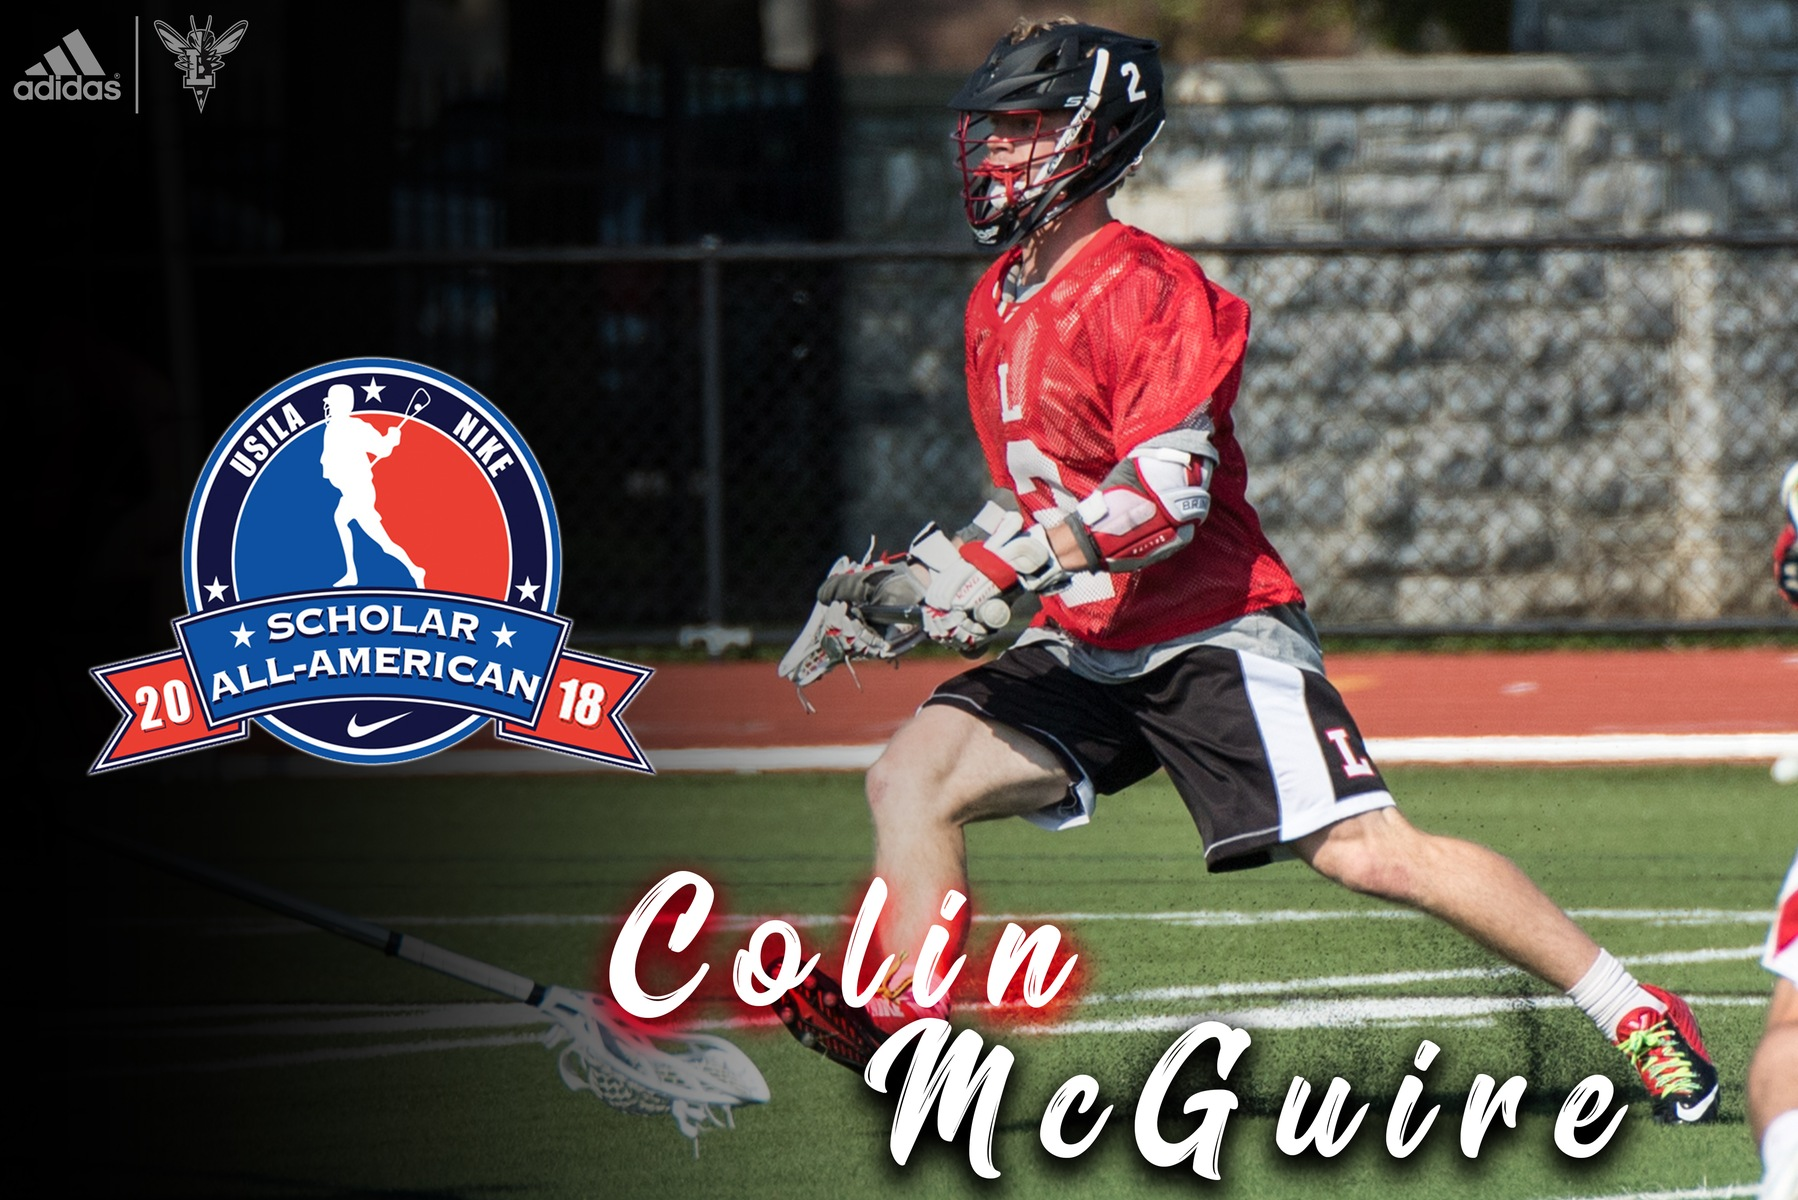 Image of Colin McGuire playing lacrosse in a red jersey. Text: USILA Scholar All-American 2018, Colin McGuire